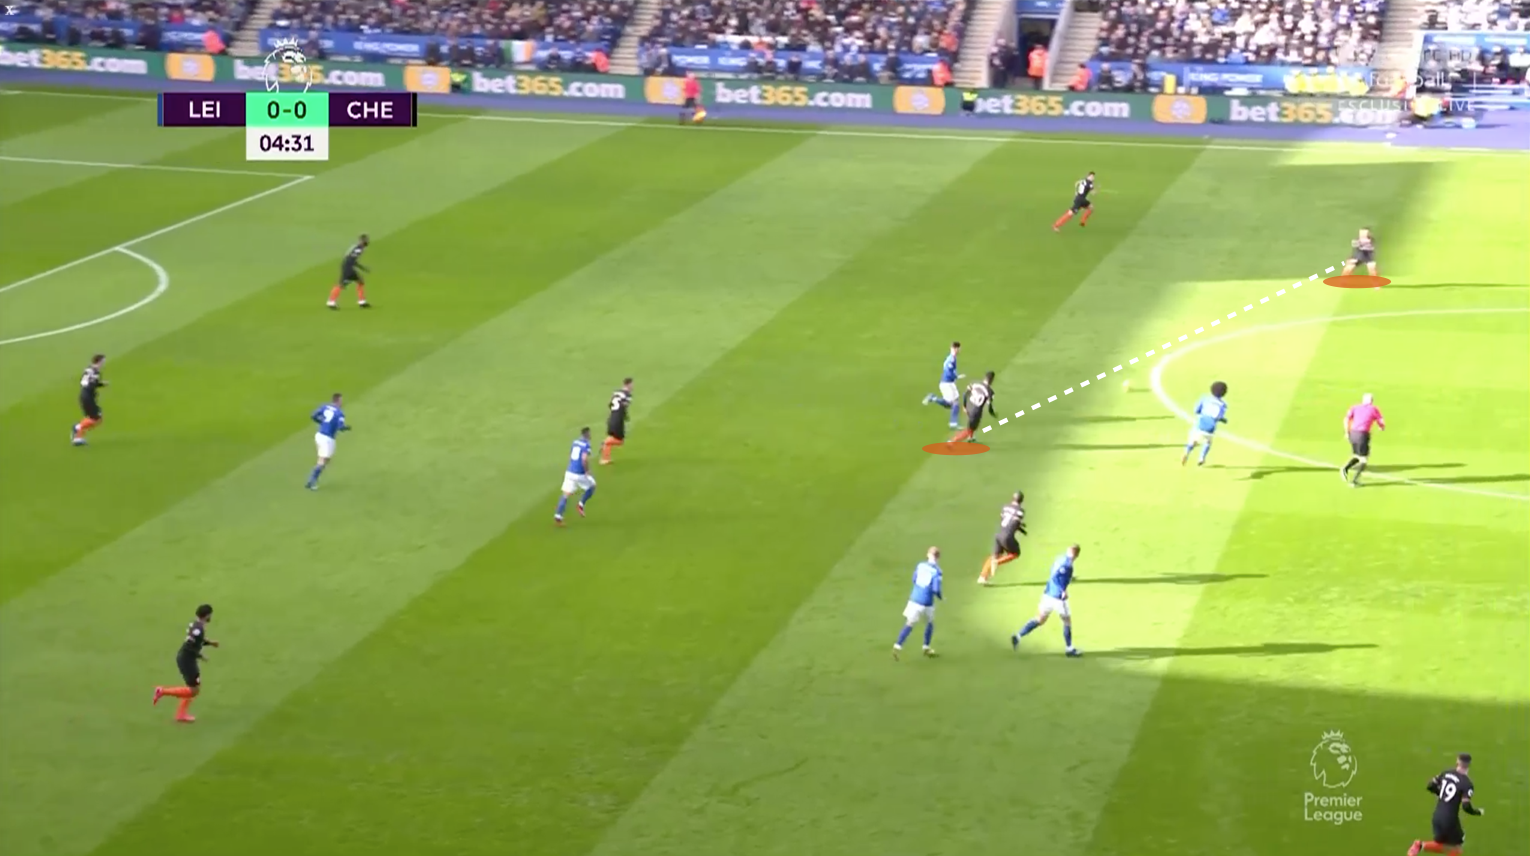 Premier League 2019/20: Leicester City vs Chelsea - tactical analysis tactics